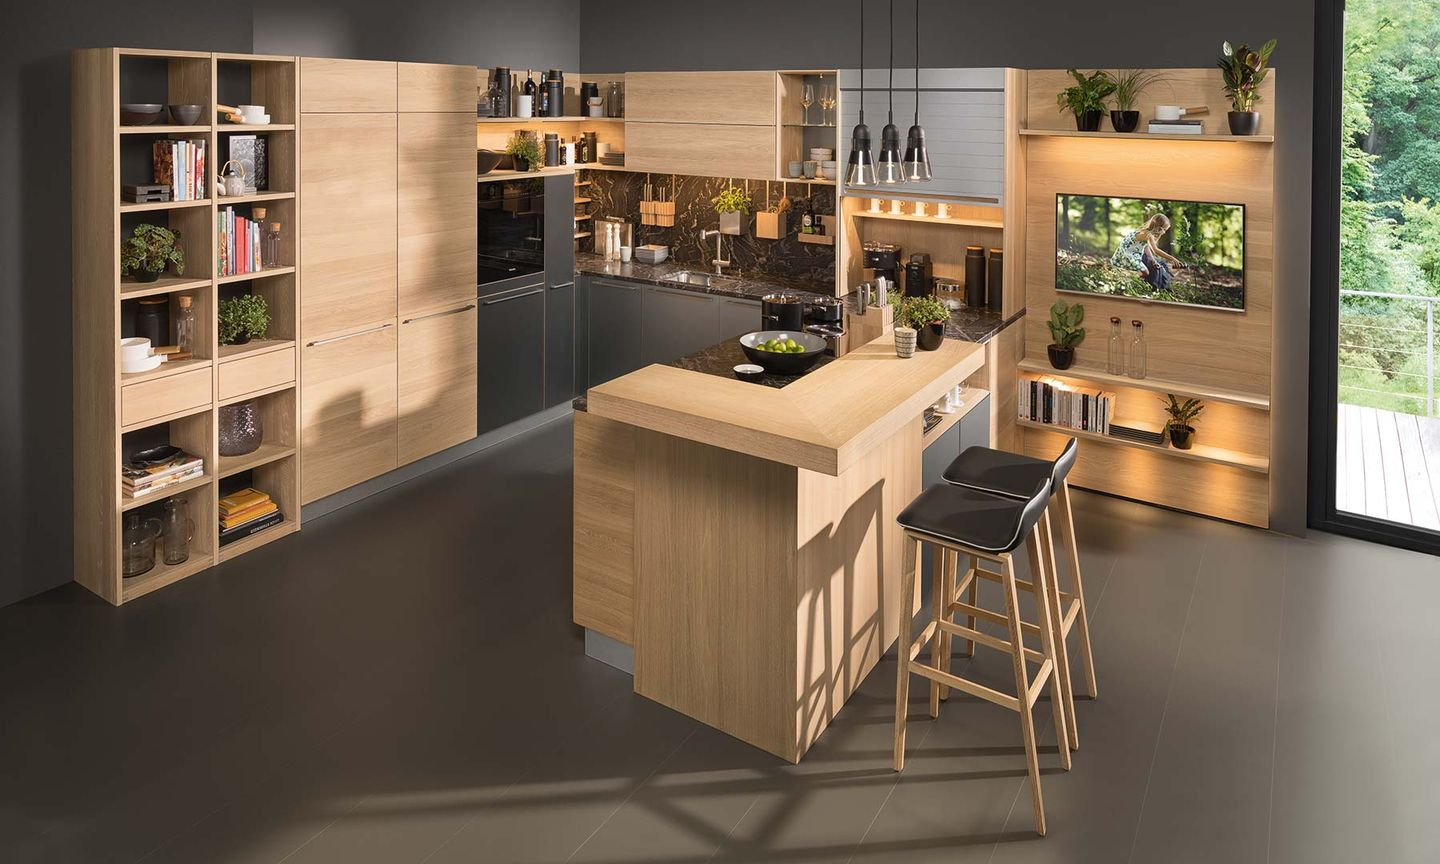 Küche Modern Side By Side Linee Kitchen The Kitchen All Rounder Team 7